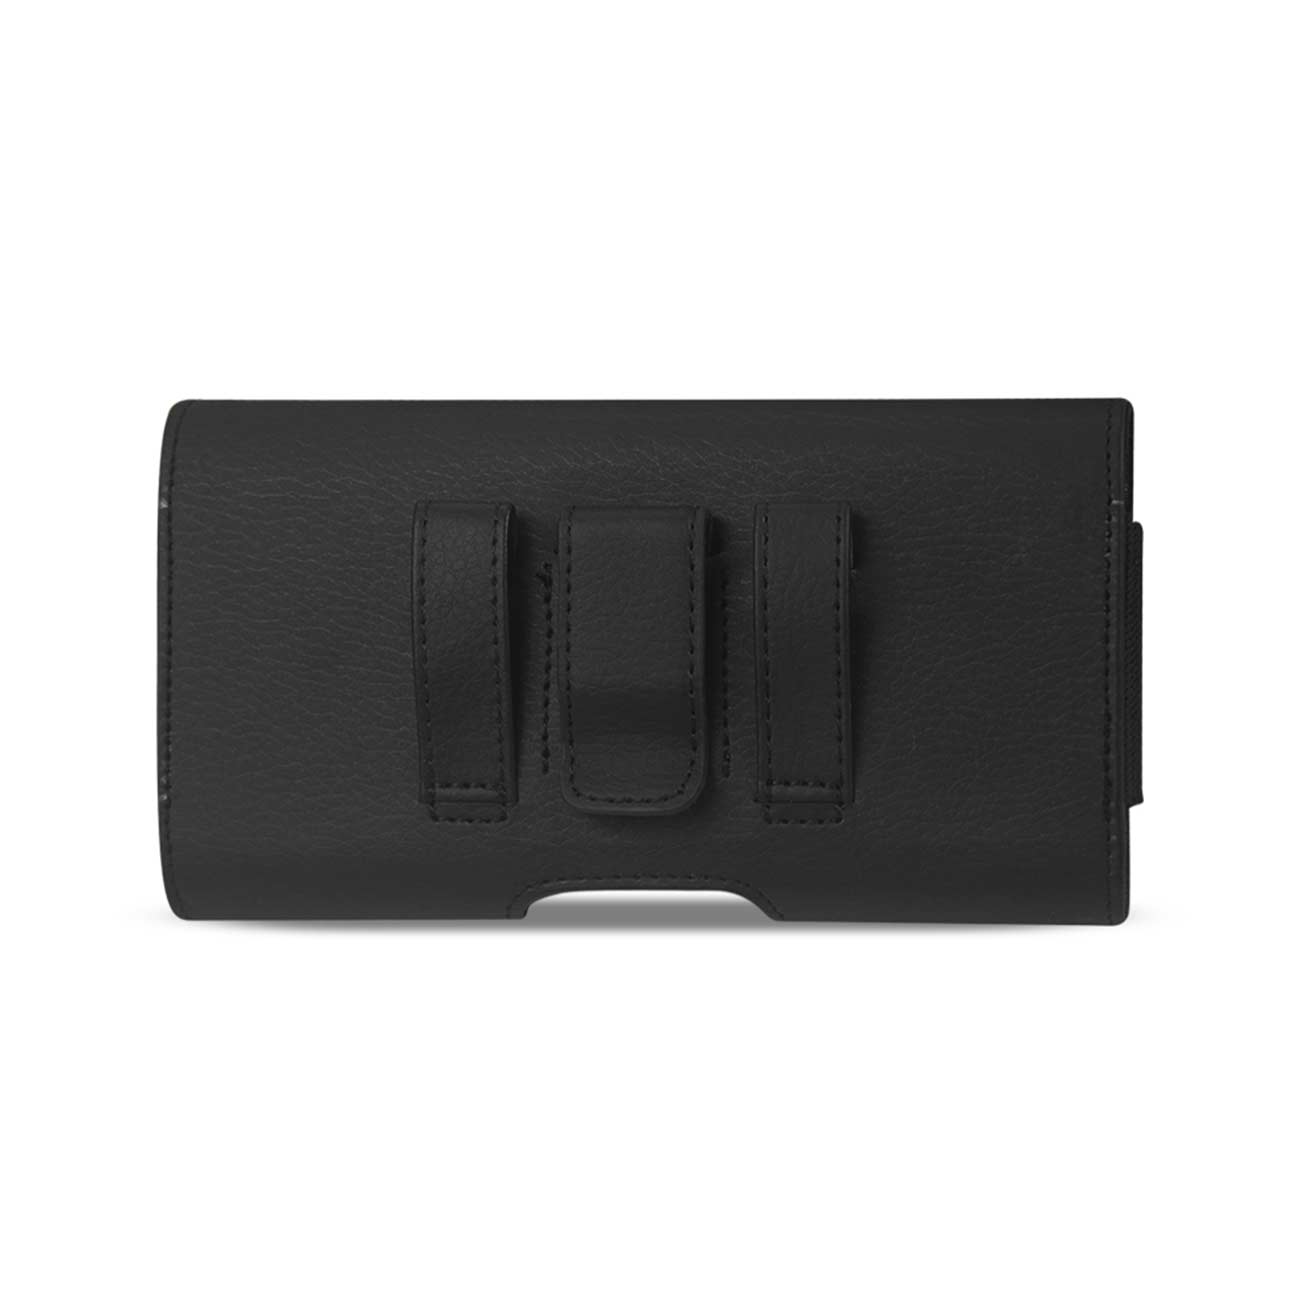 Reiko Horizontal Leather Card Holder Pouch Black In Cardboard Packaging 552905(SAMS4SL) HP500B-BK